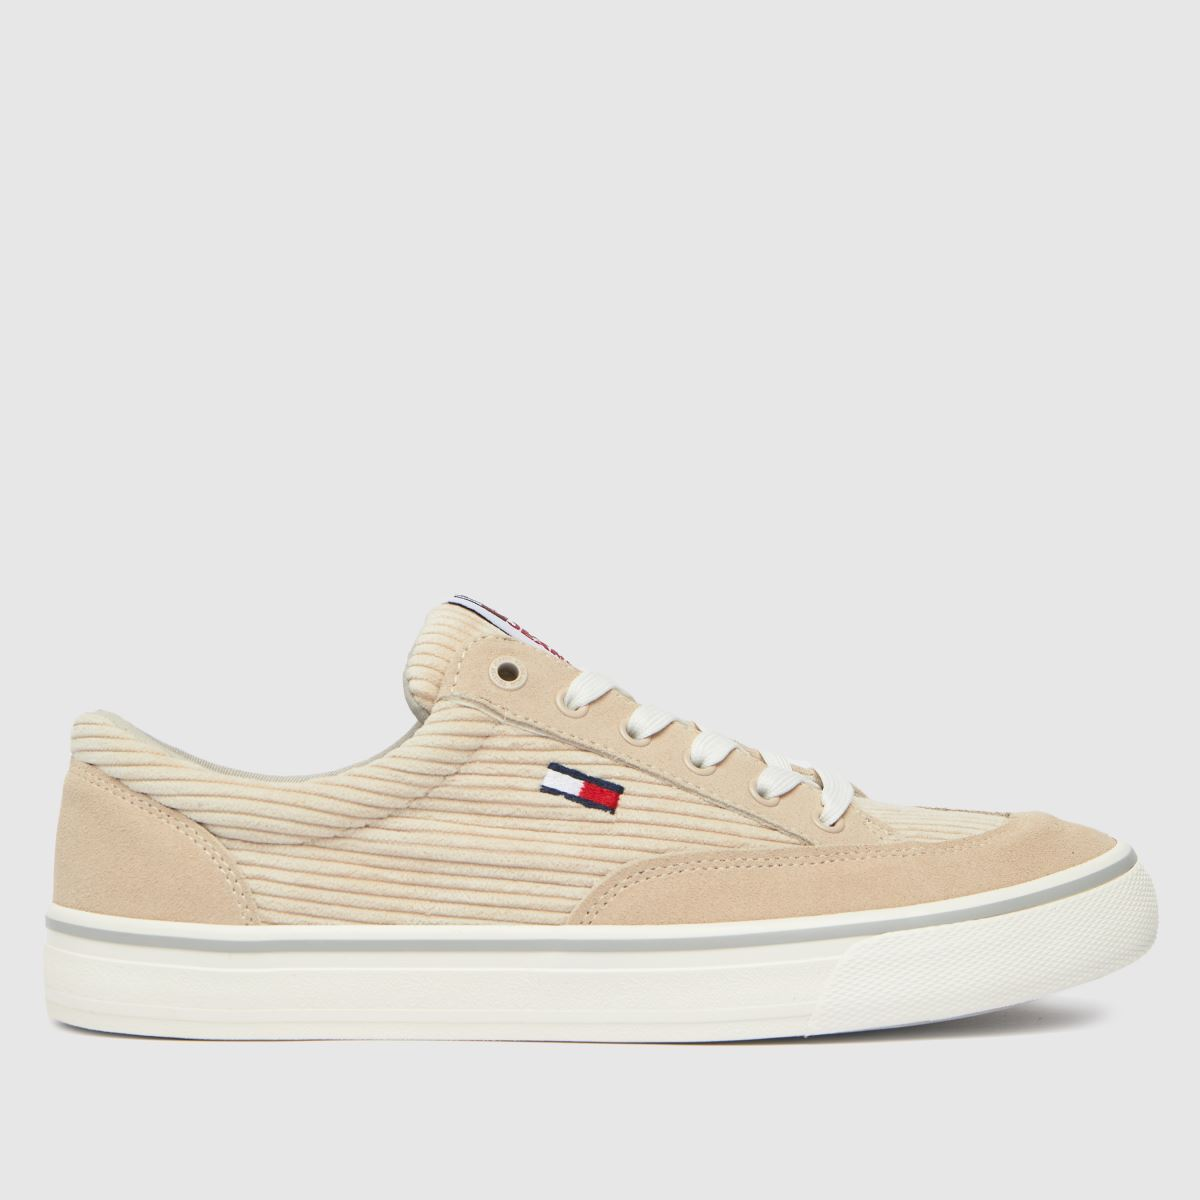 Tommy Hilfiger Stone Corduroy Skate Sneaker Trainers